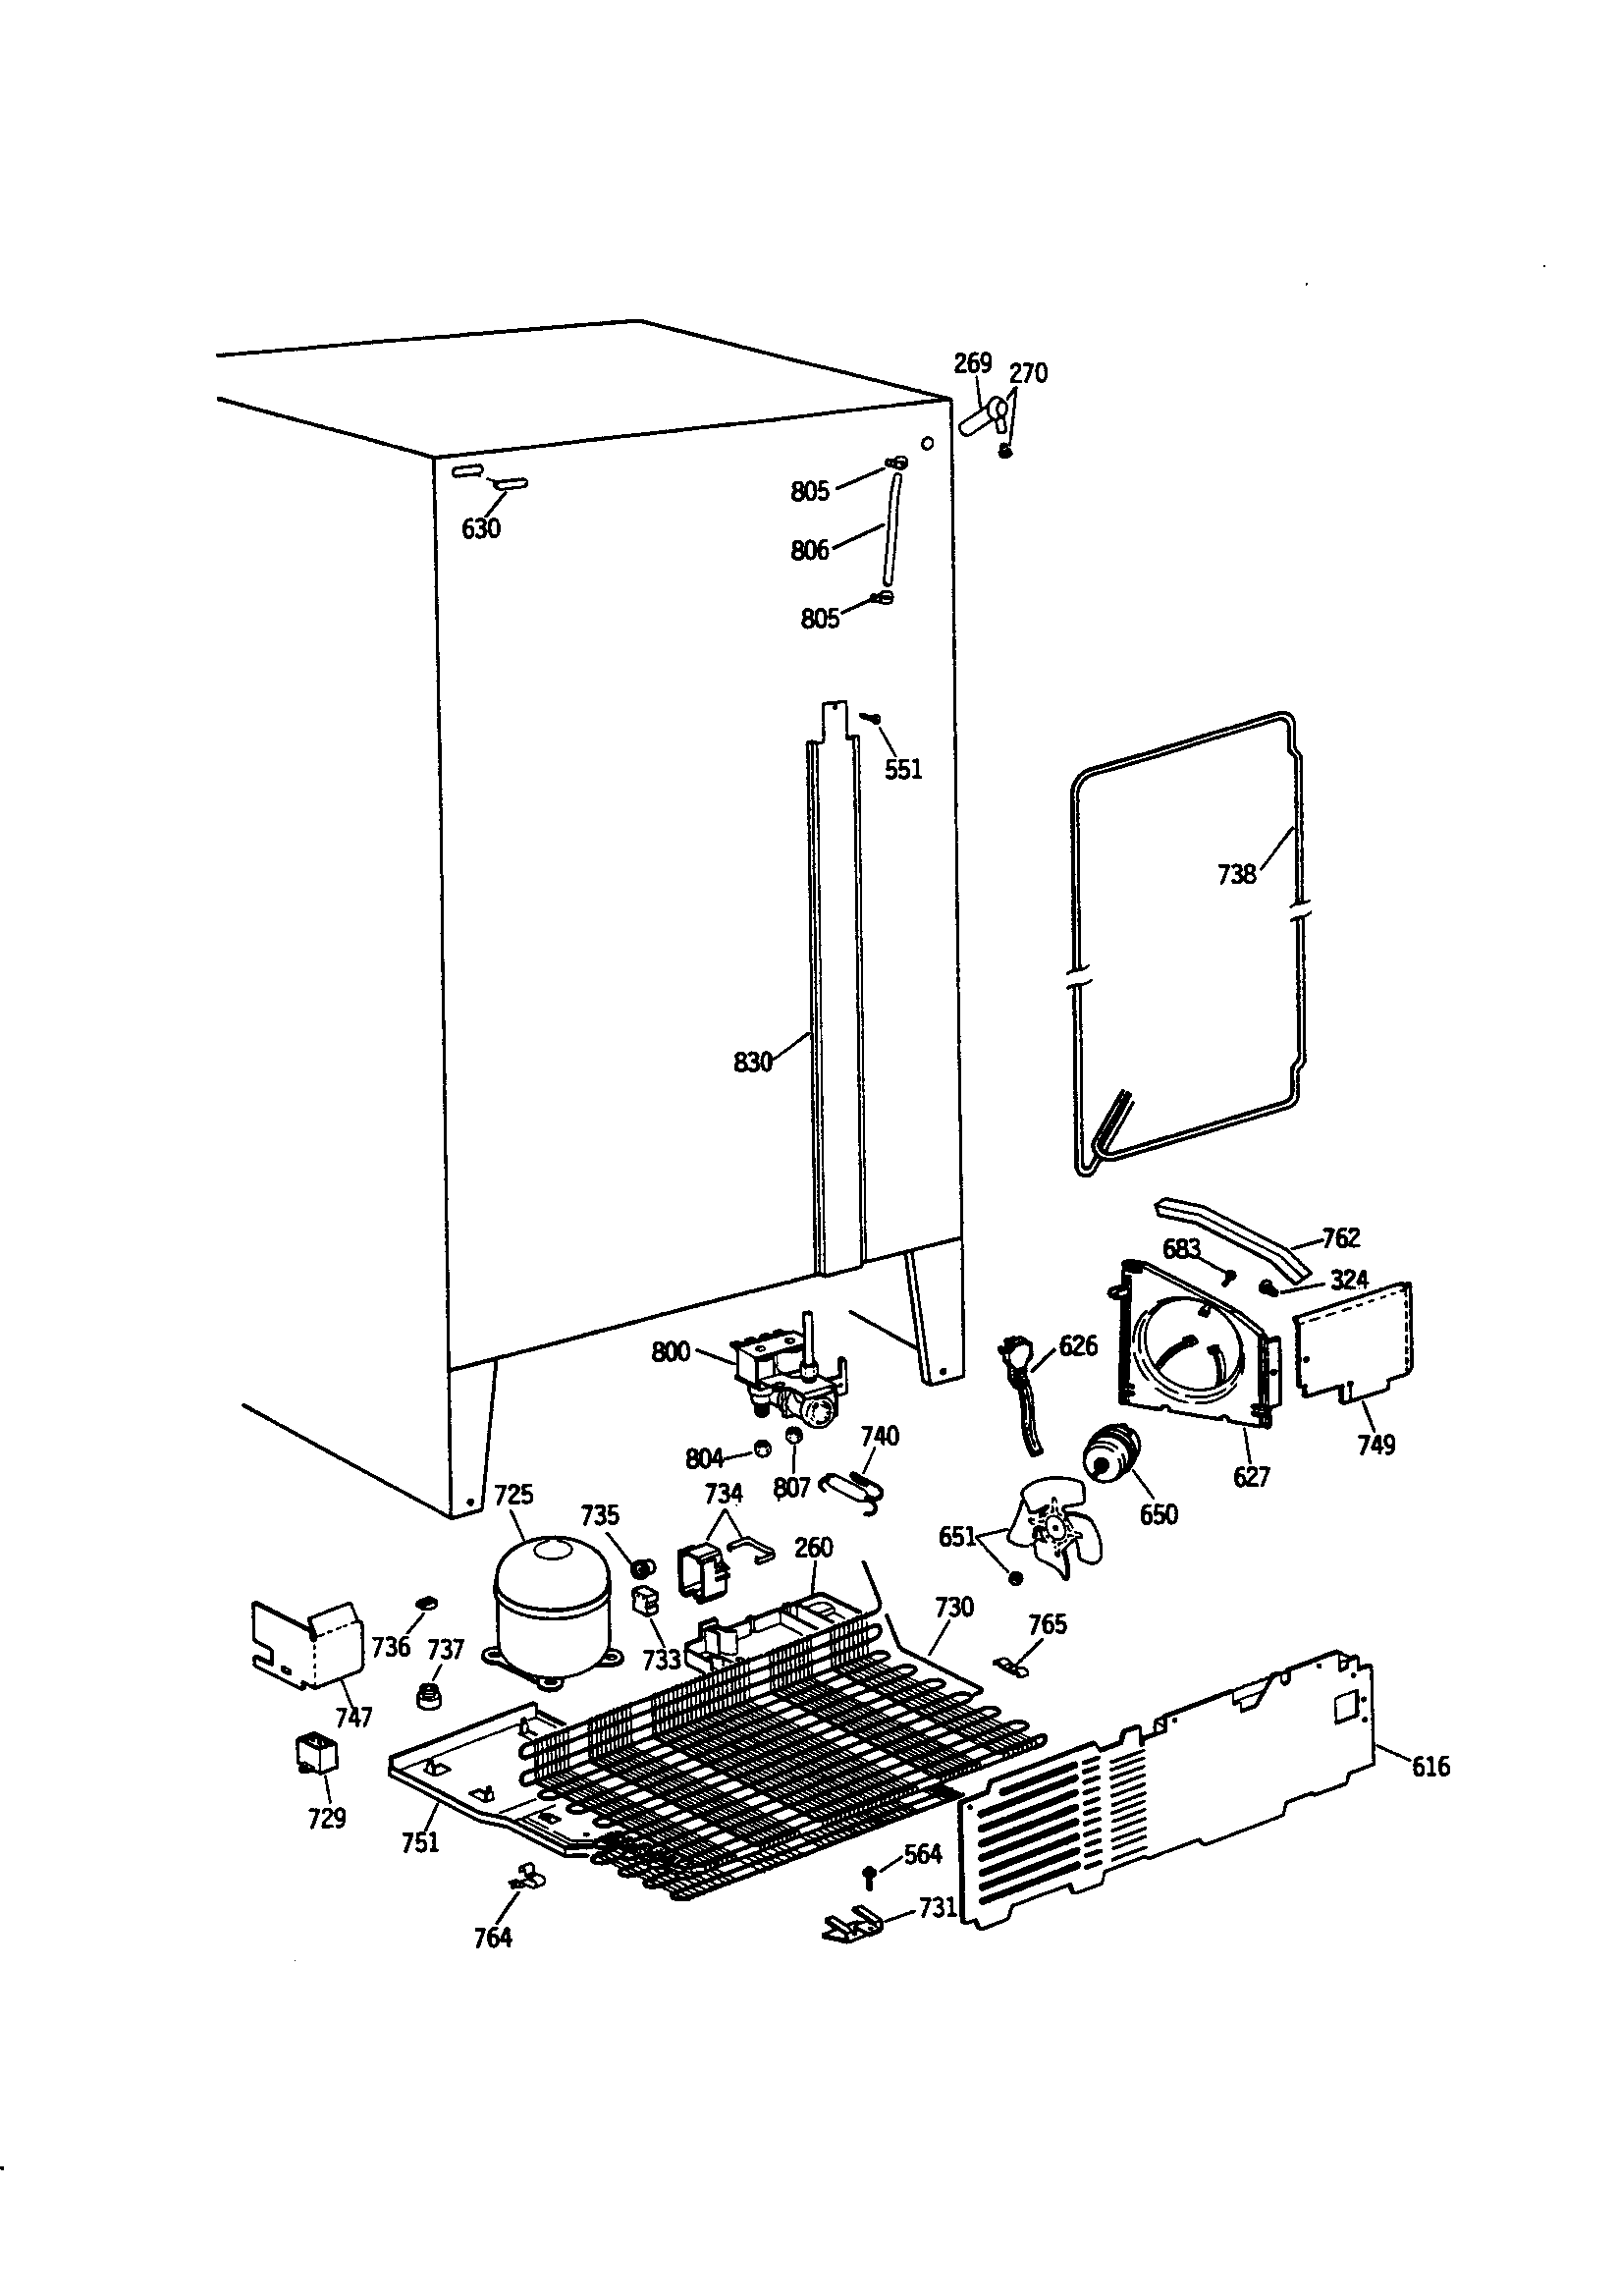 Refrigerator Parts: Ge Refrigerator Parts Diagram